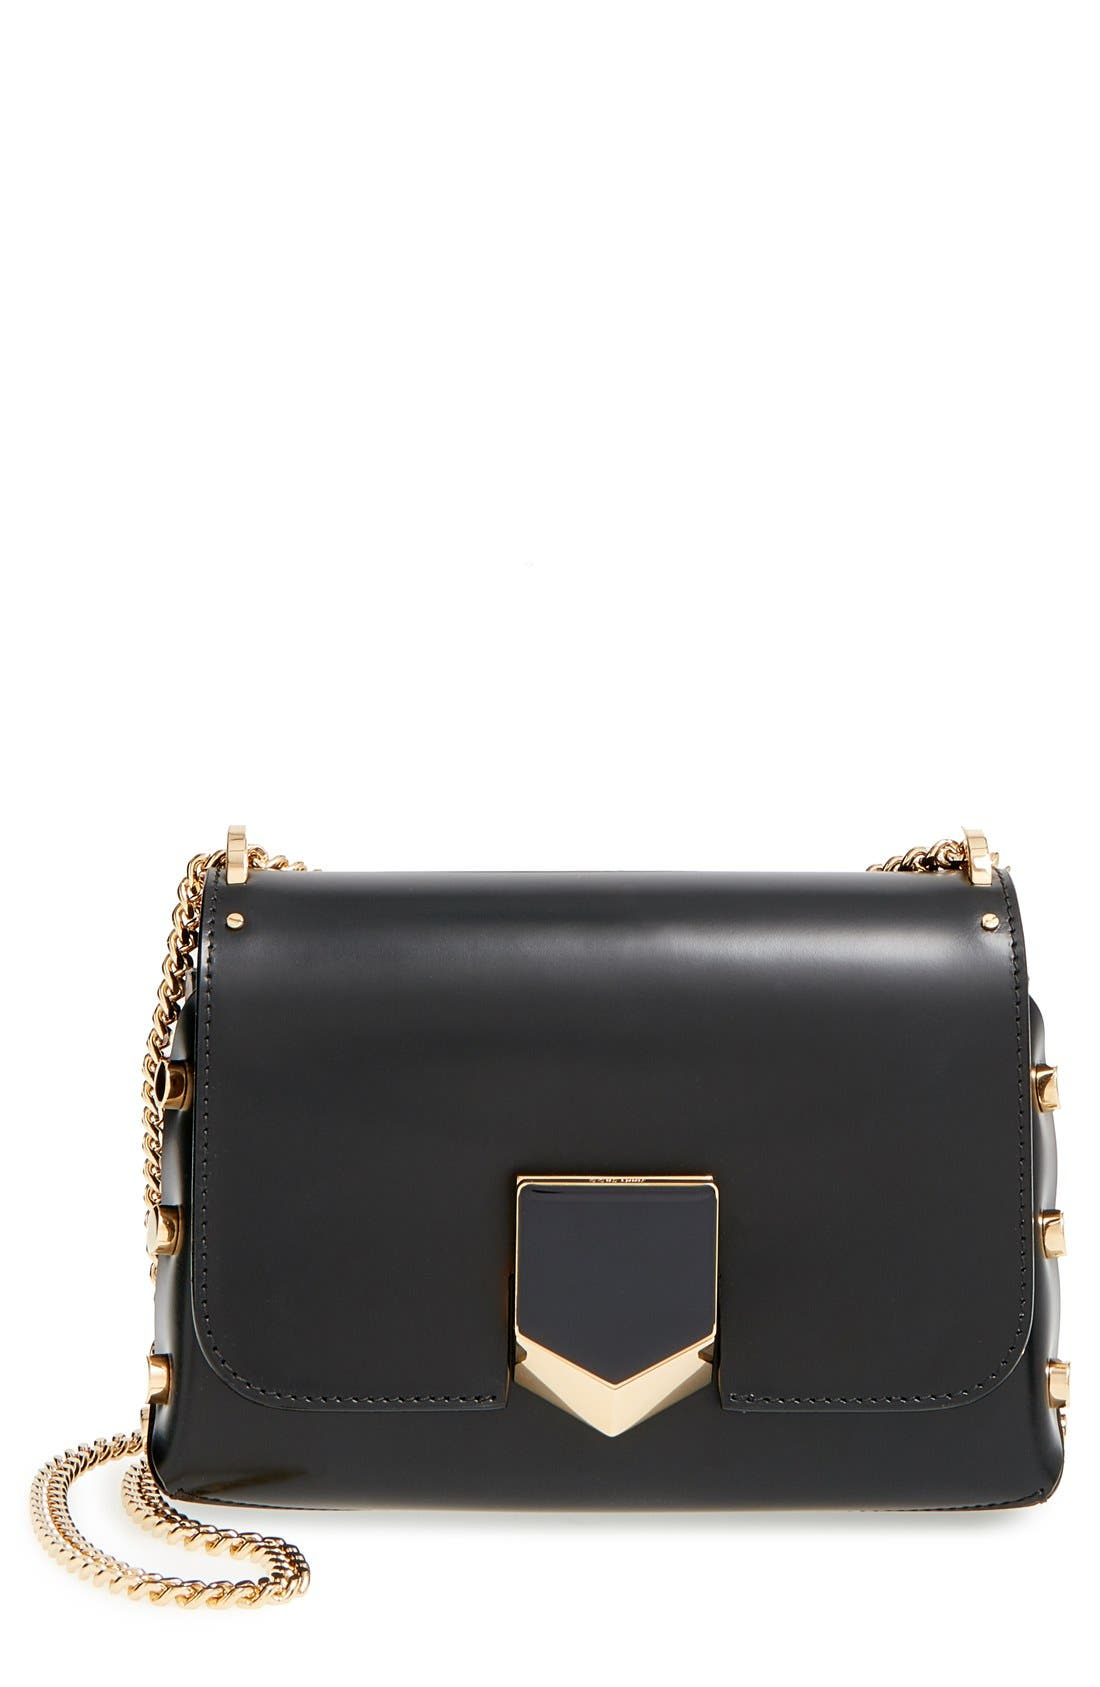 JIMMY CHOO 'Lockett Petite' Spazzolato Leather Shoulder Bag